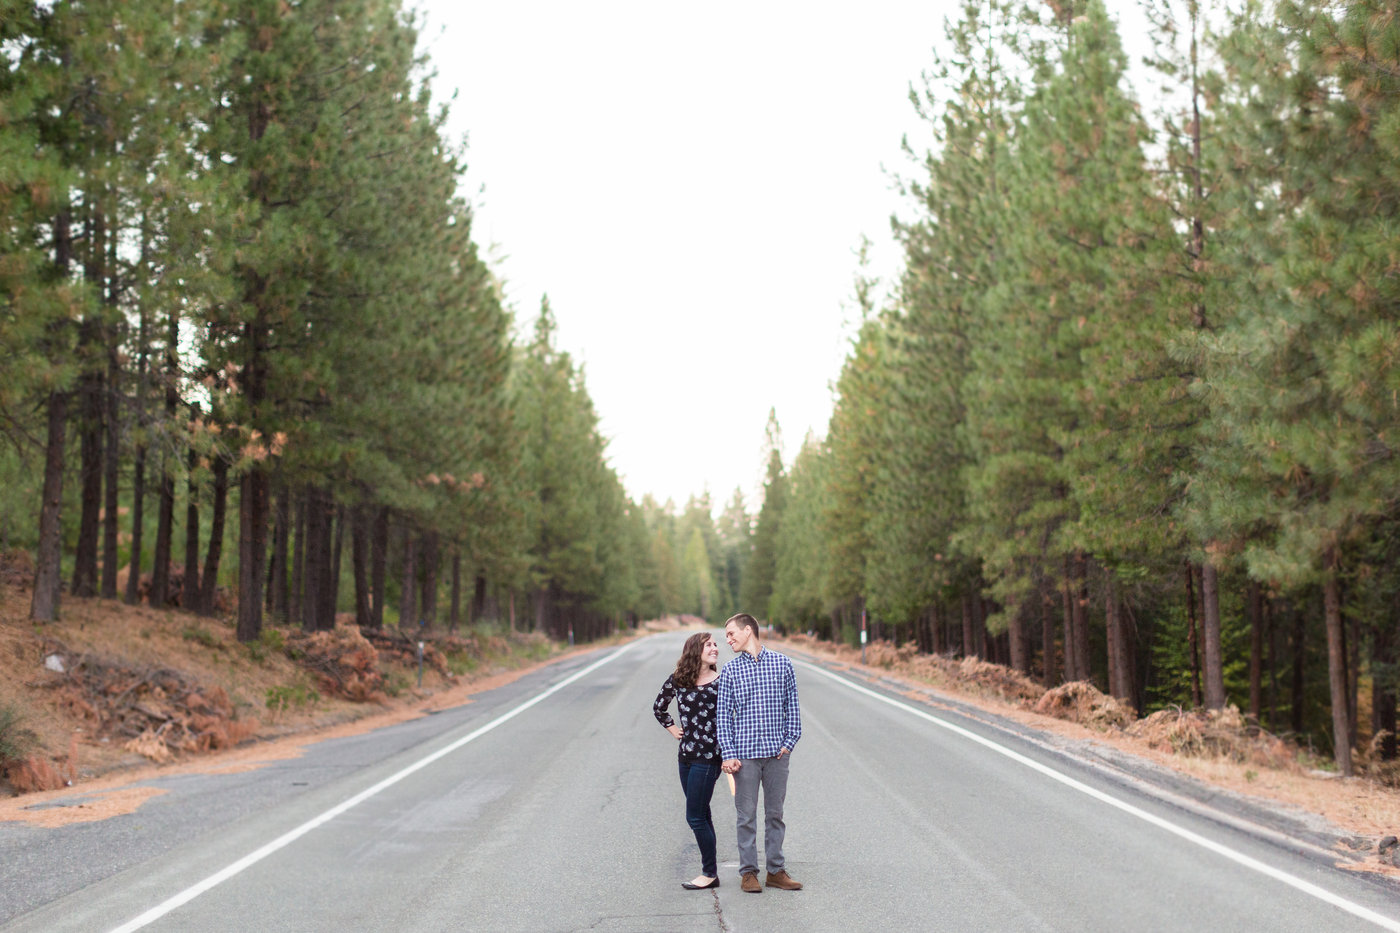 northern-california-chico-mountain-highway-32-natural-sunlight-engagement-session-photos.jpg